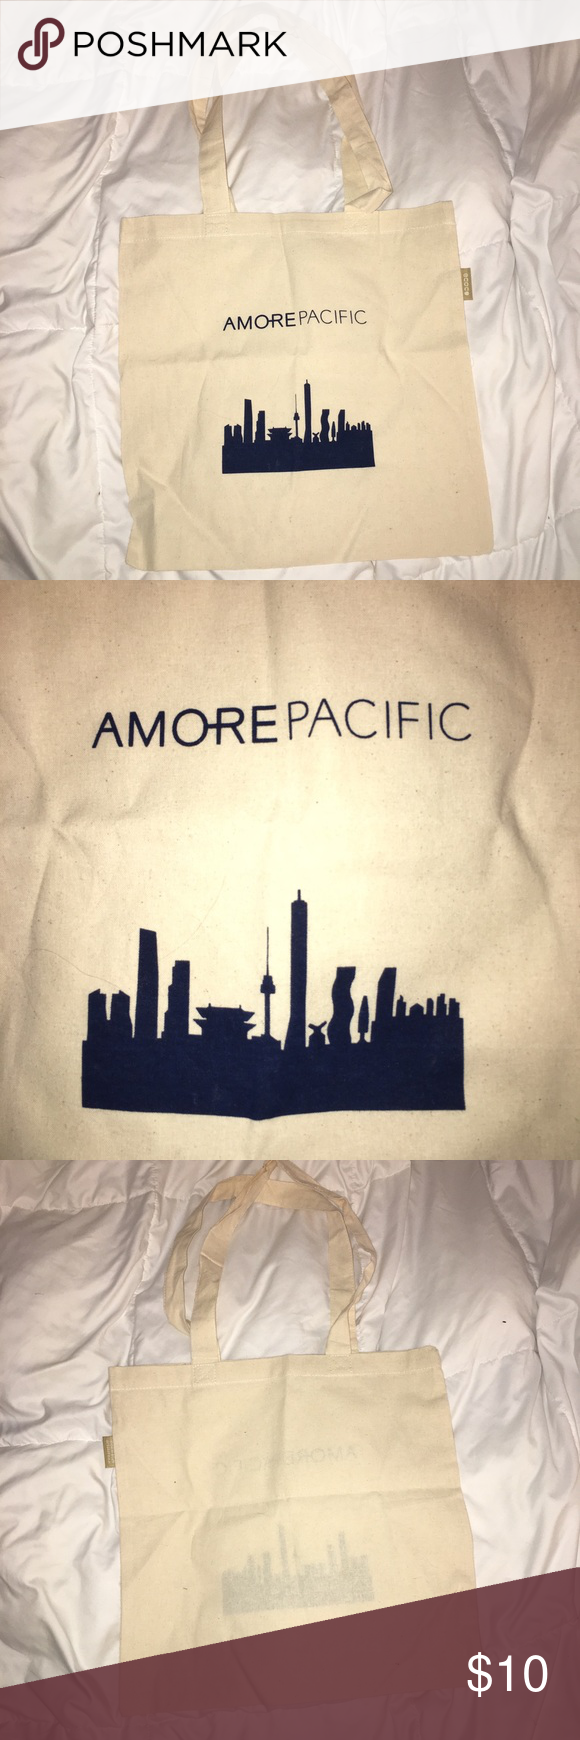 Amore Pacific canvas tote bag Amore Pacific canvas tote bag💙small canvas tote, perfect for items that you wouldn't want to get your regular purse dirty! Has some fabric piling but not noticeable. Amore Pacific Bags Totes